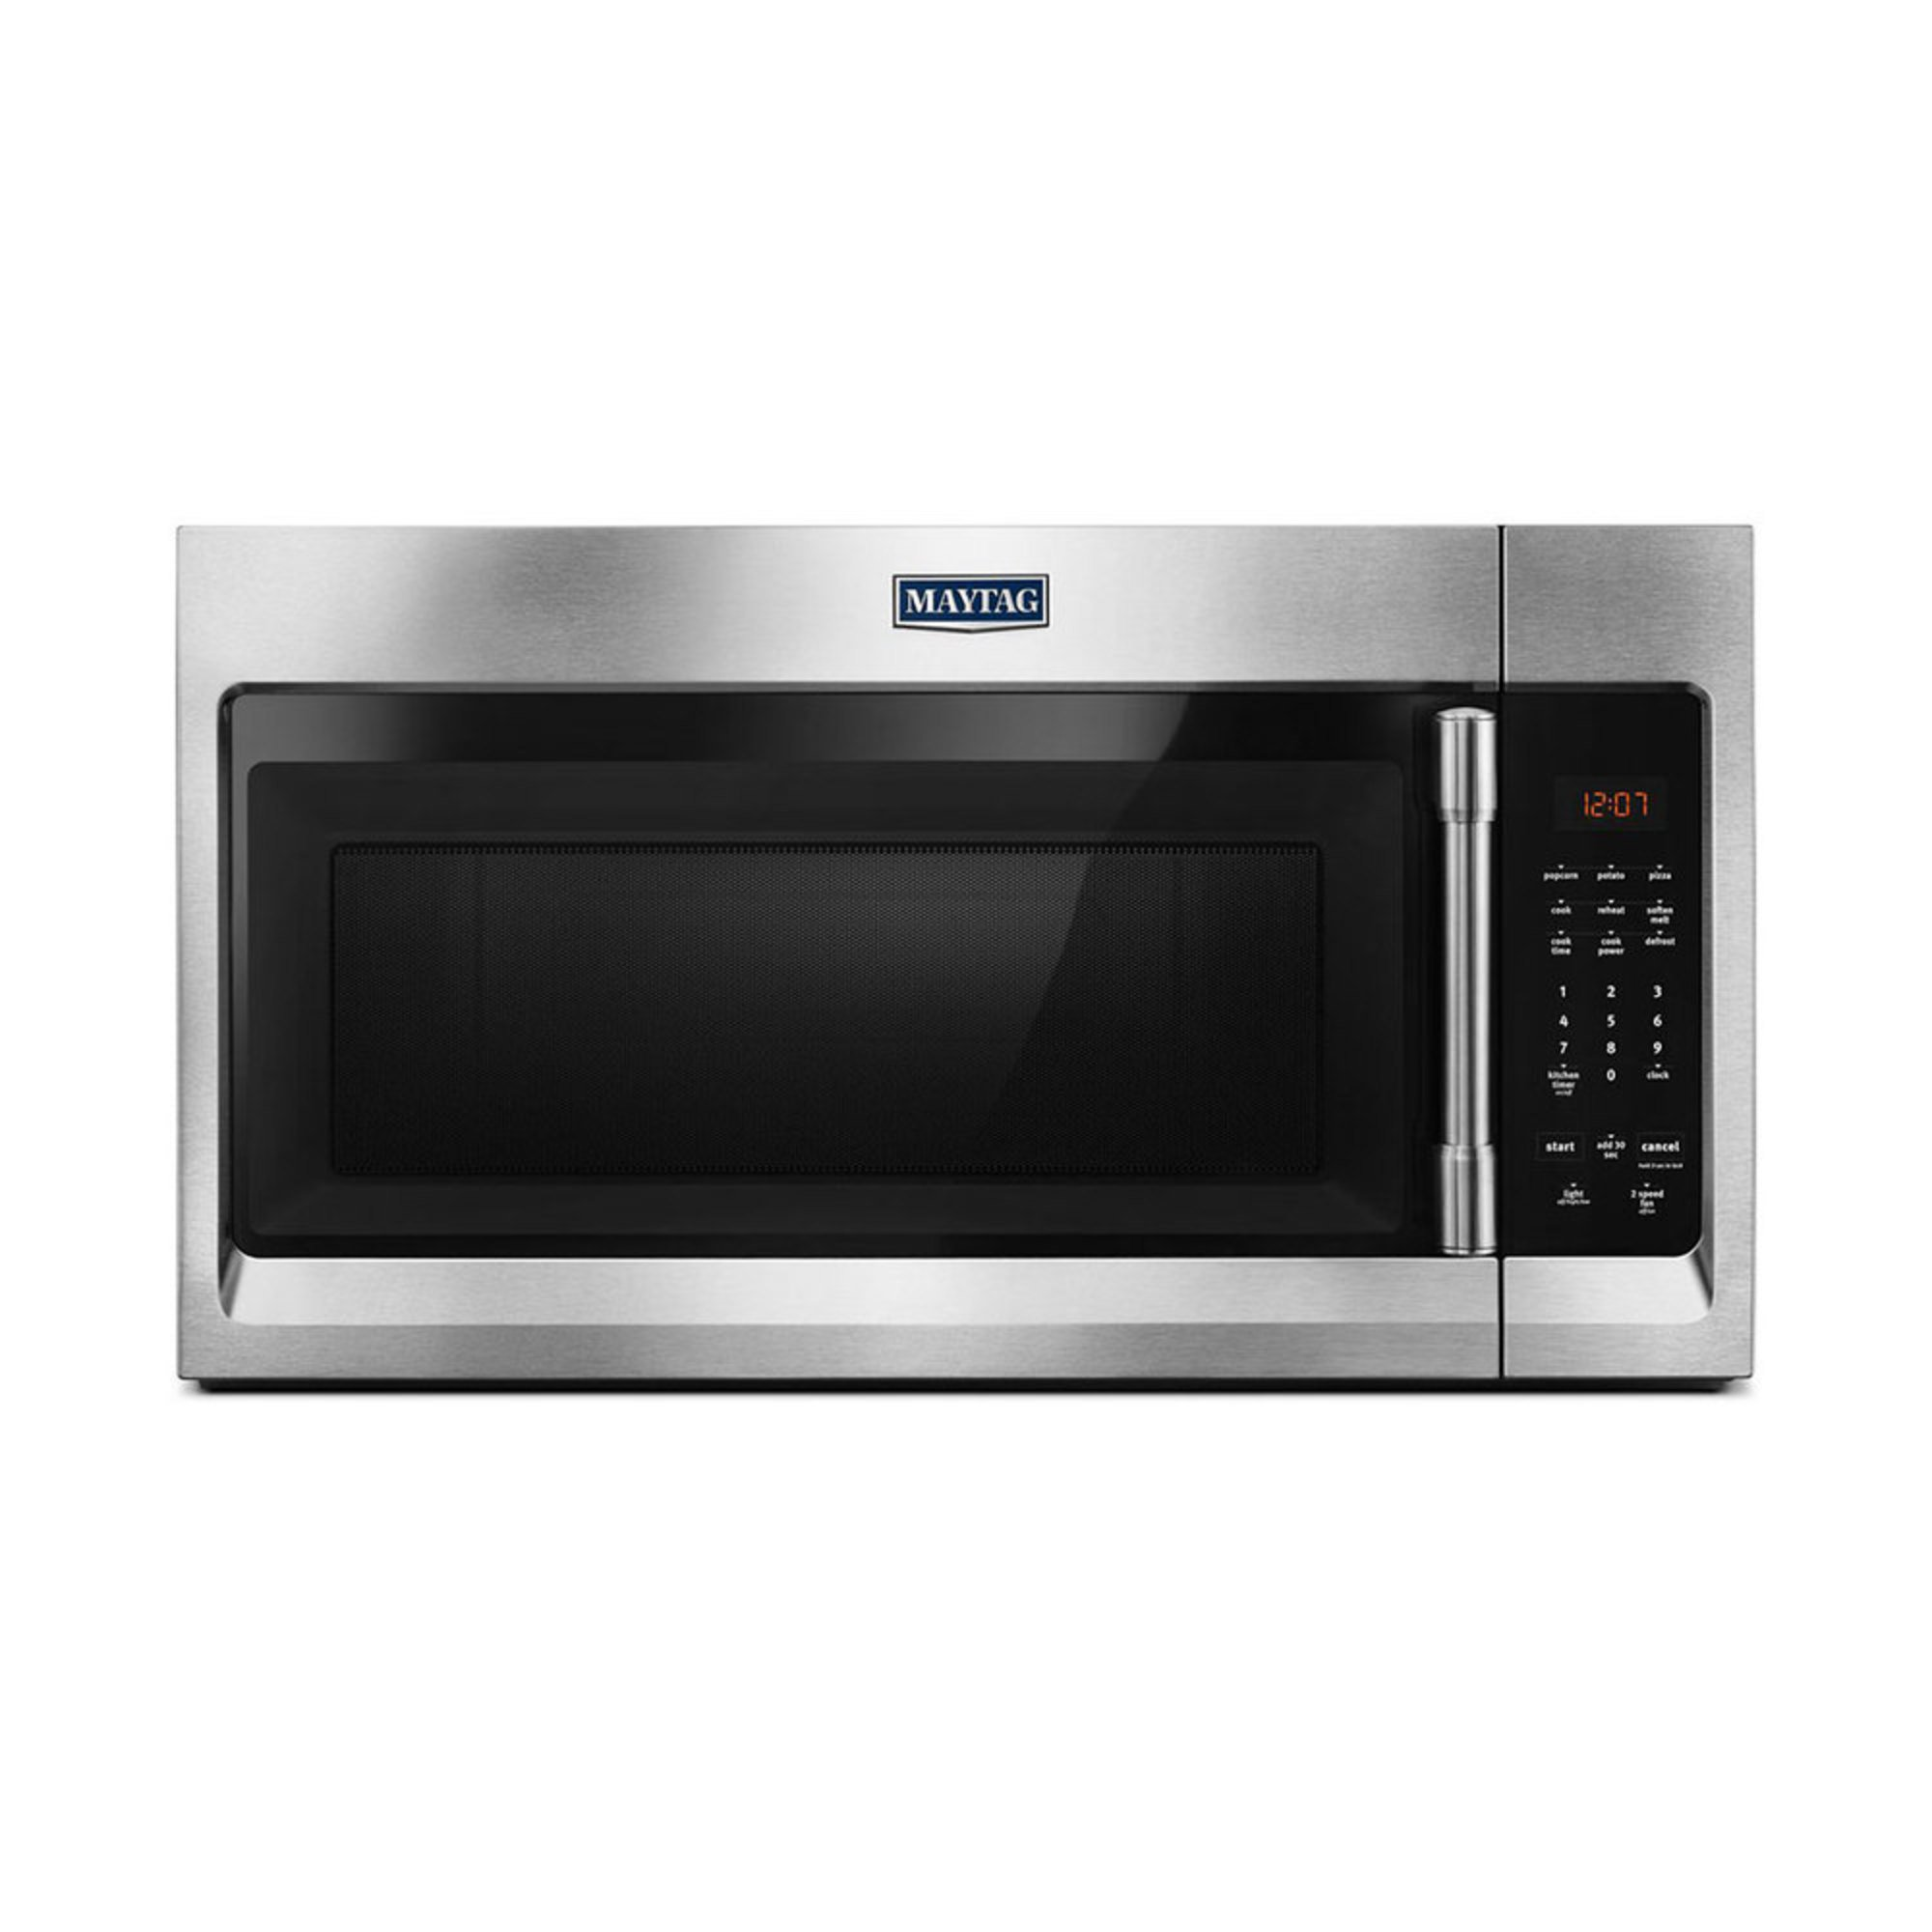 American Heritage Microwave Oven: Maytag 1.7-cu.ft. Over-the-range Microwave Oven, Stainless